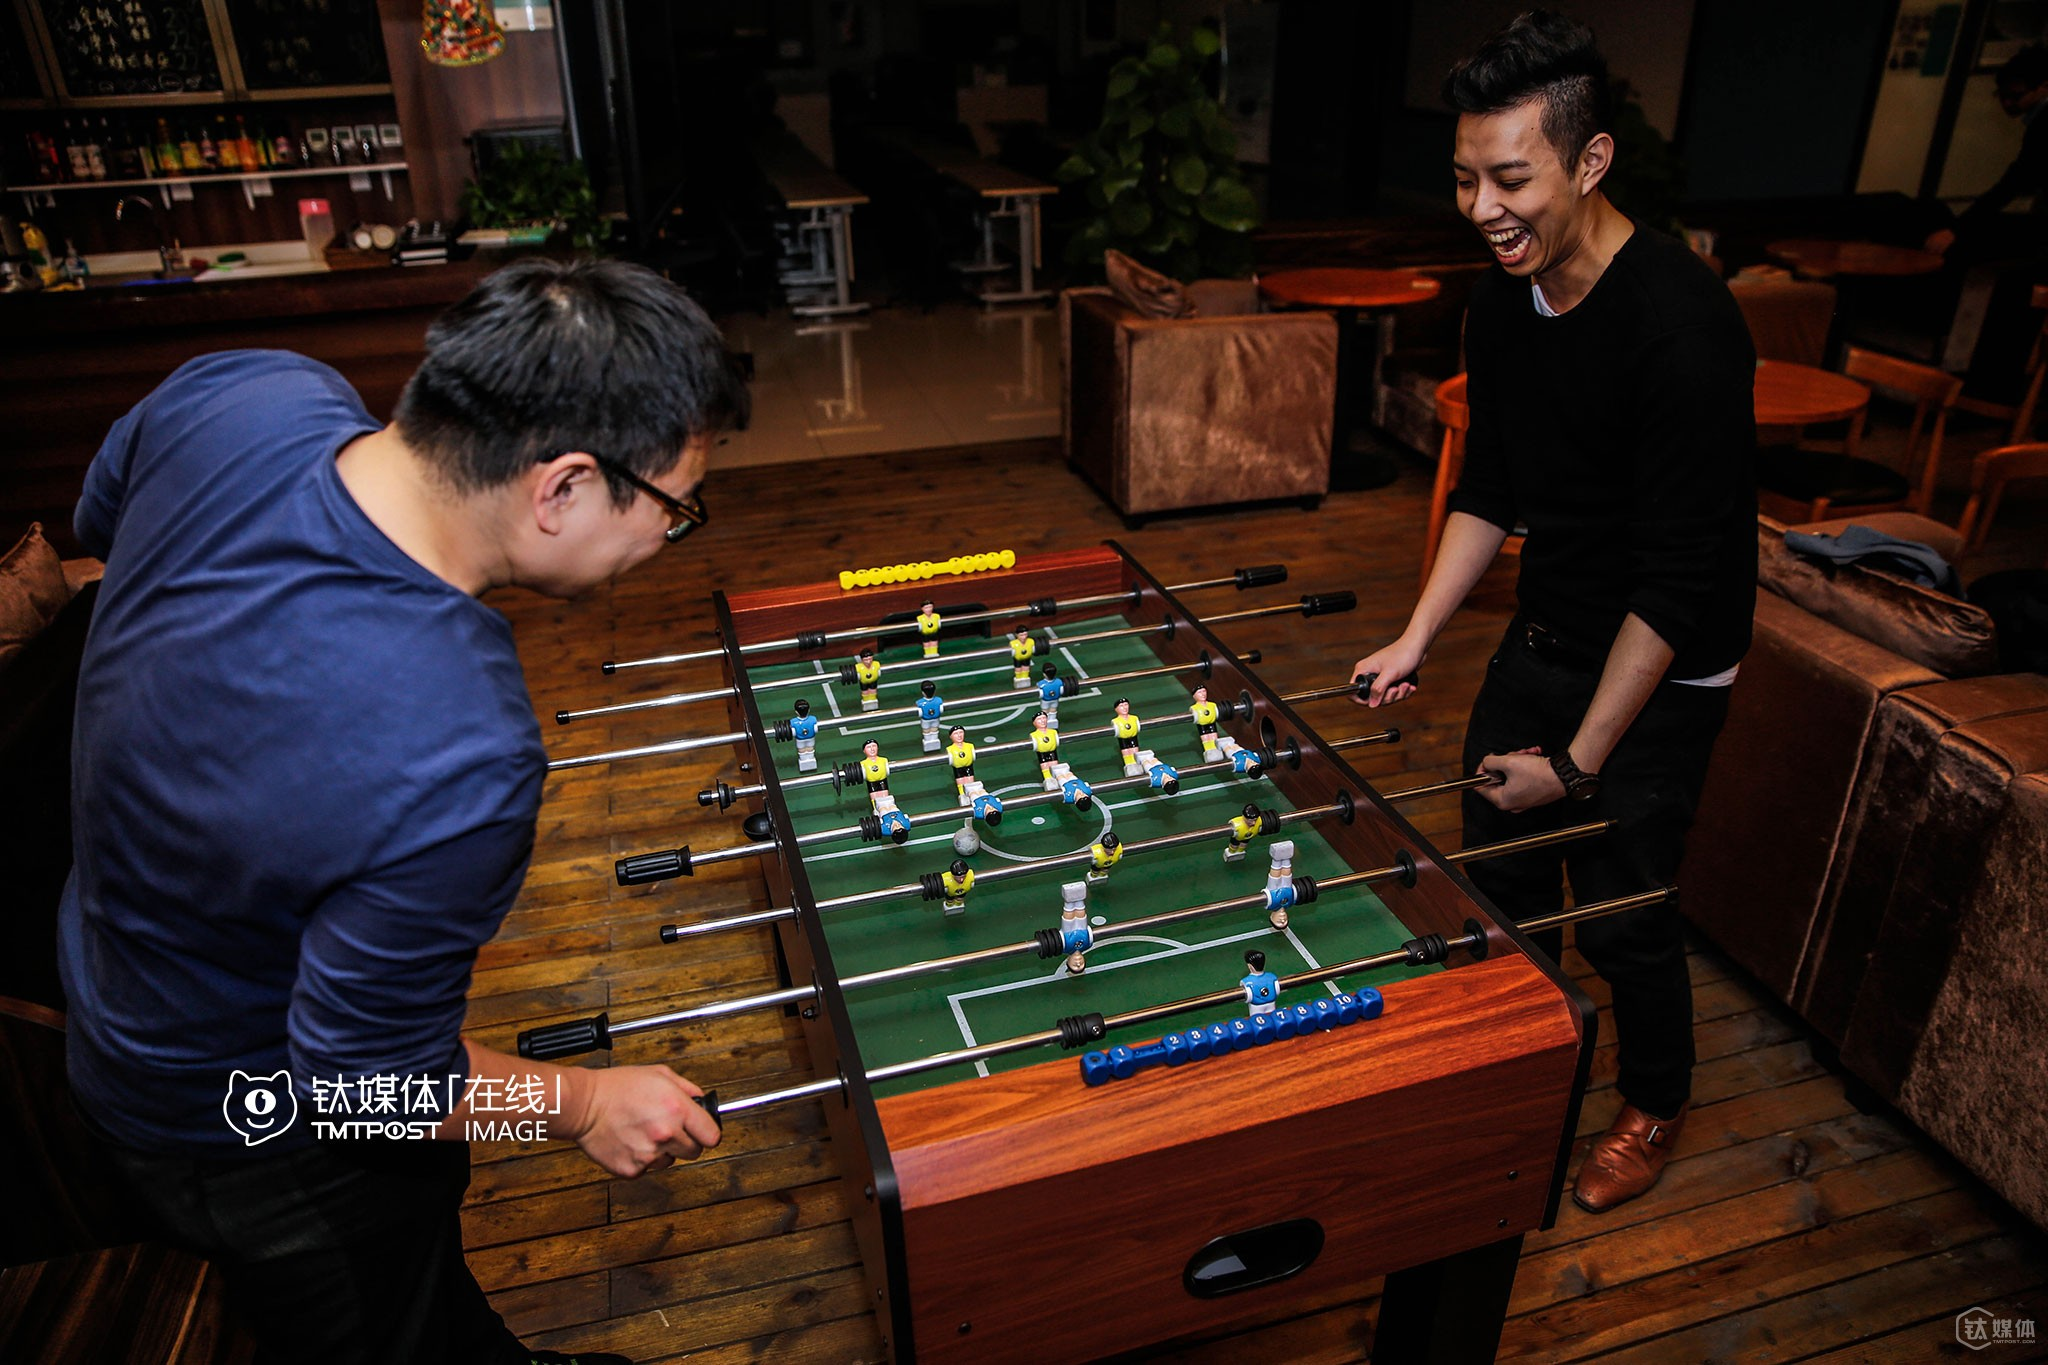 It's 21:00 PM, March, 4th, Shijing Mountain Entrepreneur Community, Beijing. Jian Shaonian (the guy in the right of the above picture), and his partner Mike were playing desk football to relax after finishing their job.